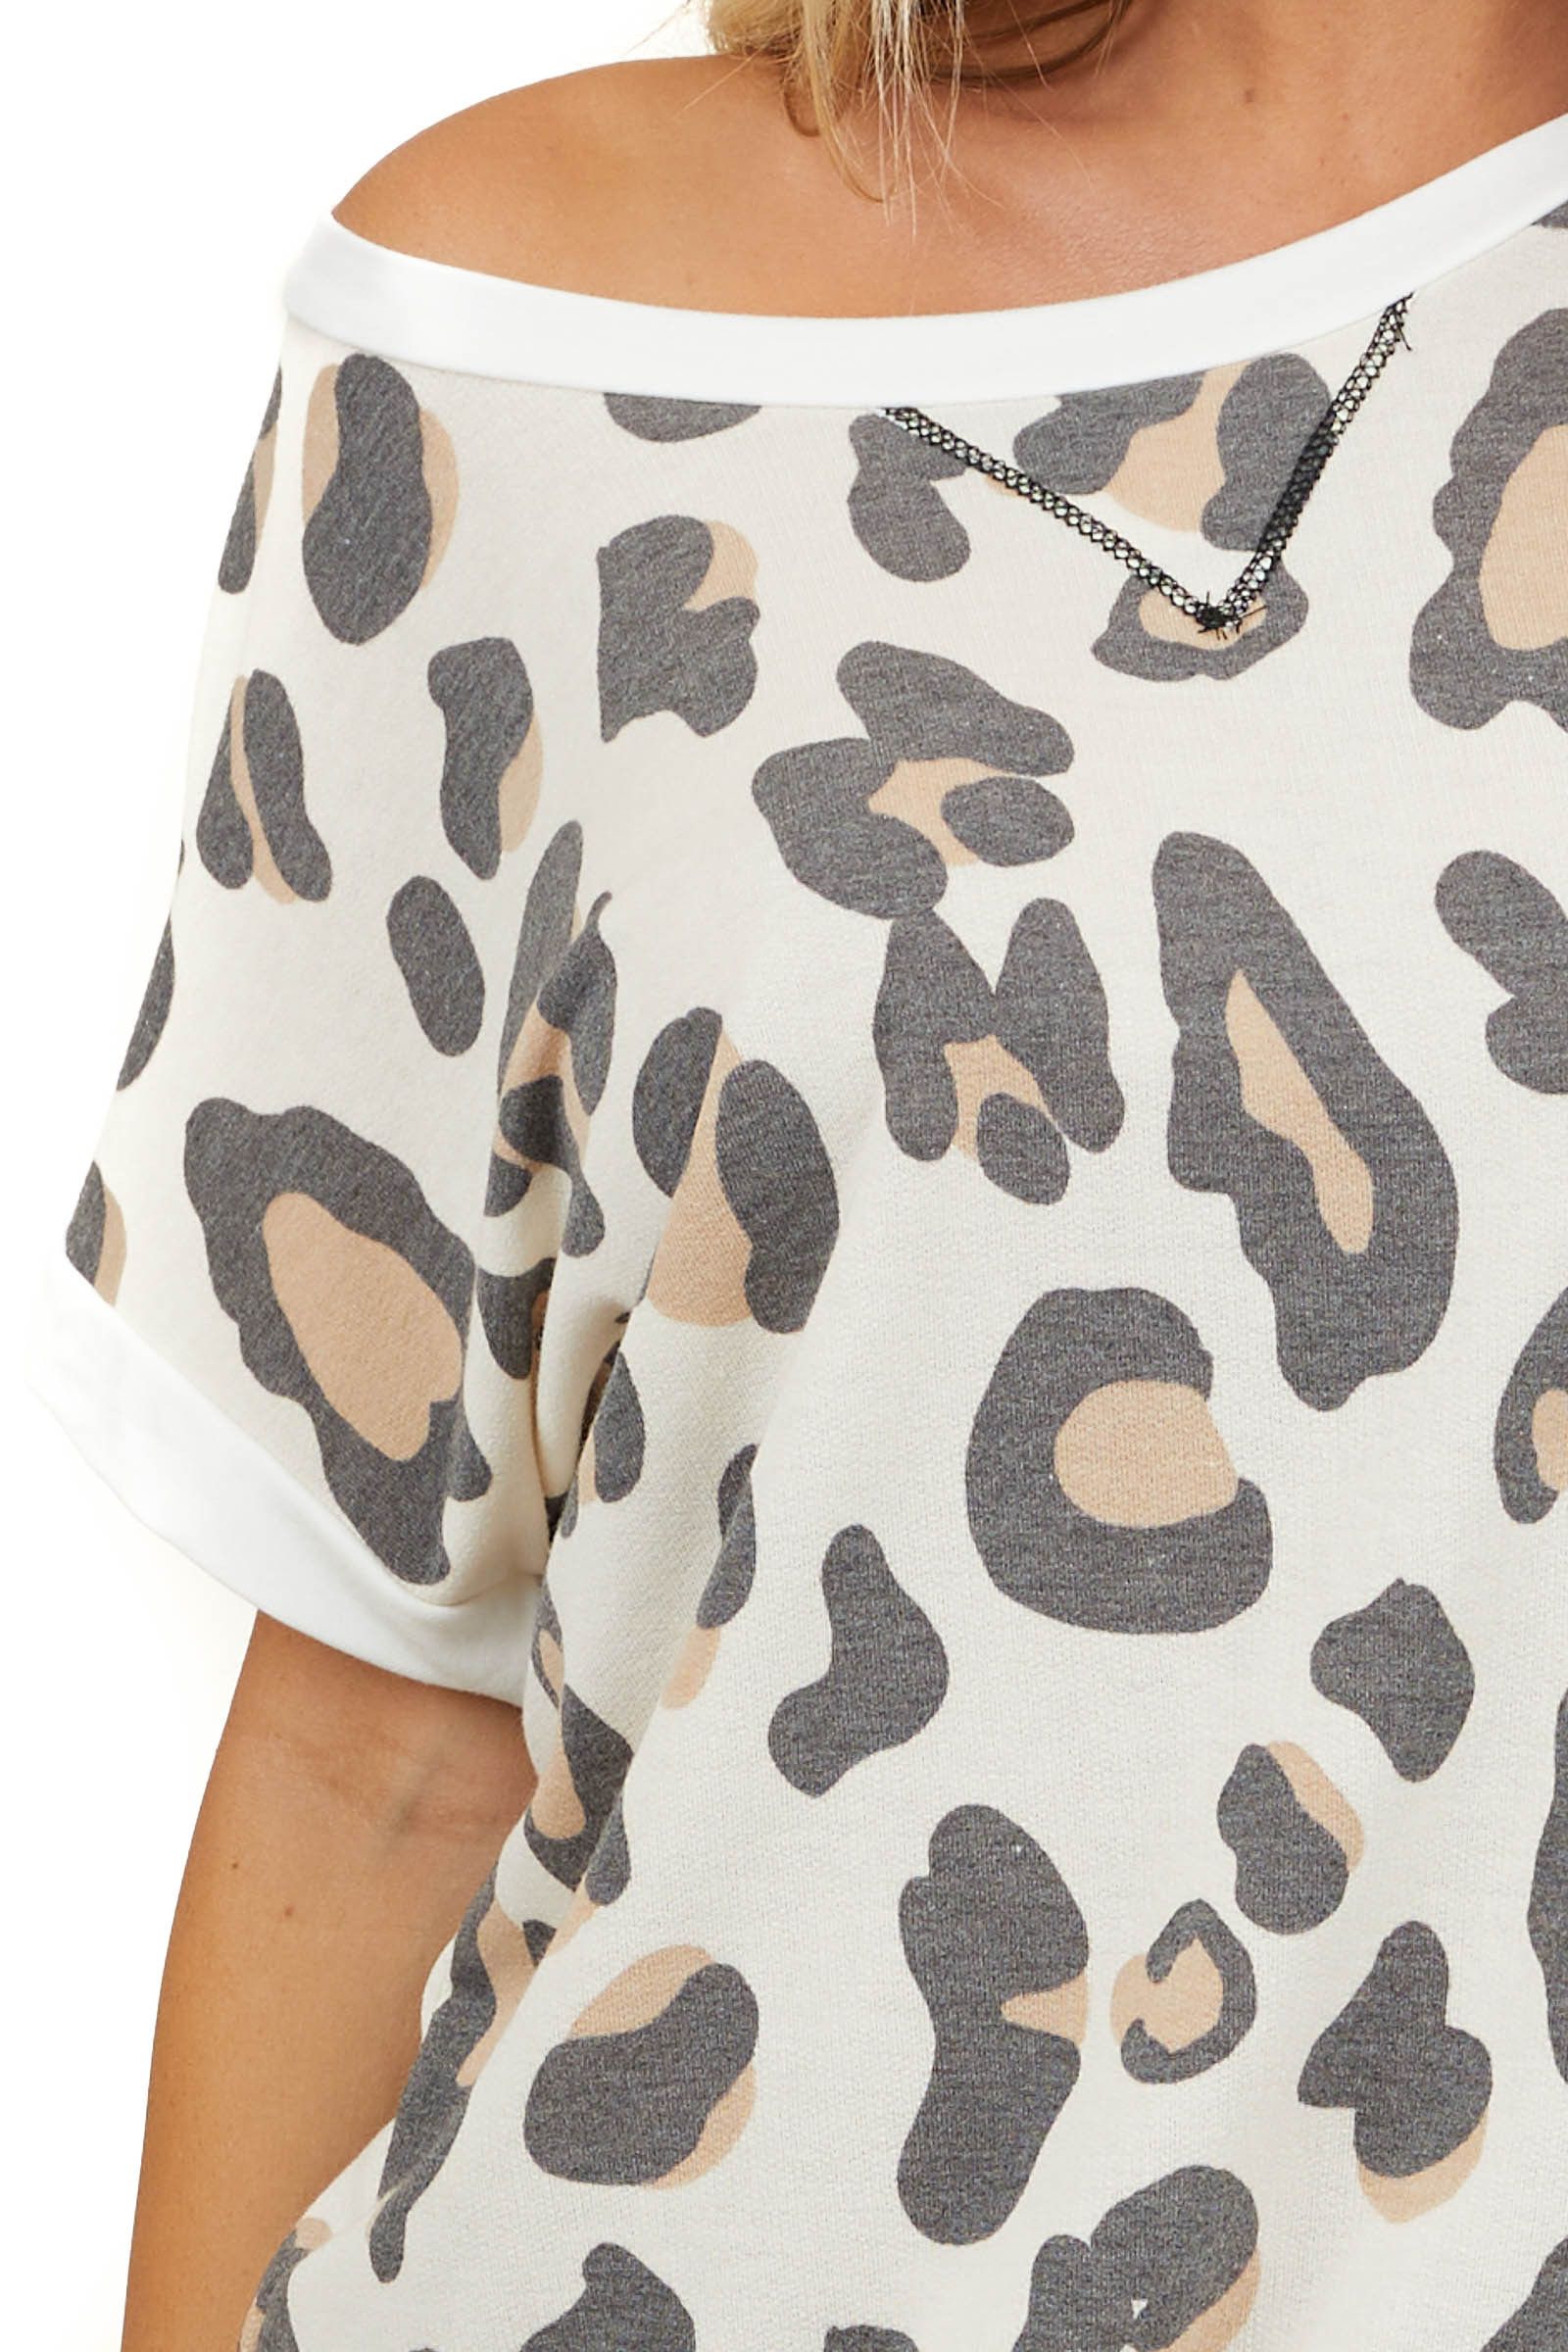 Cream Leopard Print Short Sleeve Top with Stitched V Detail